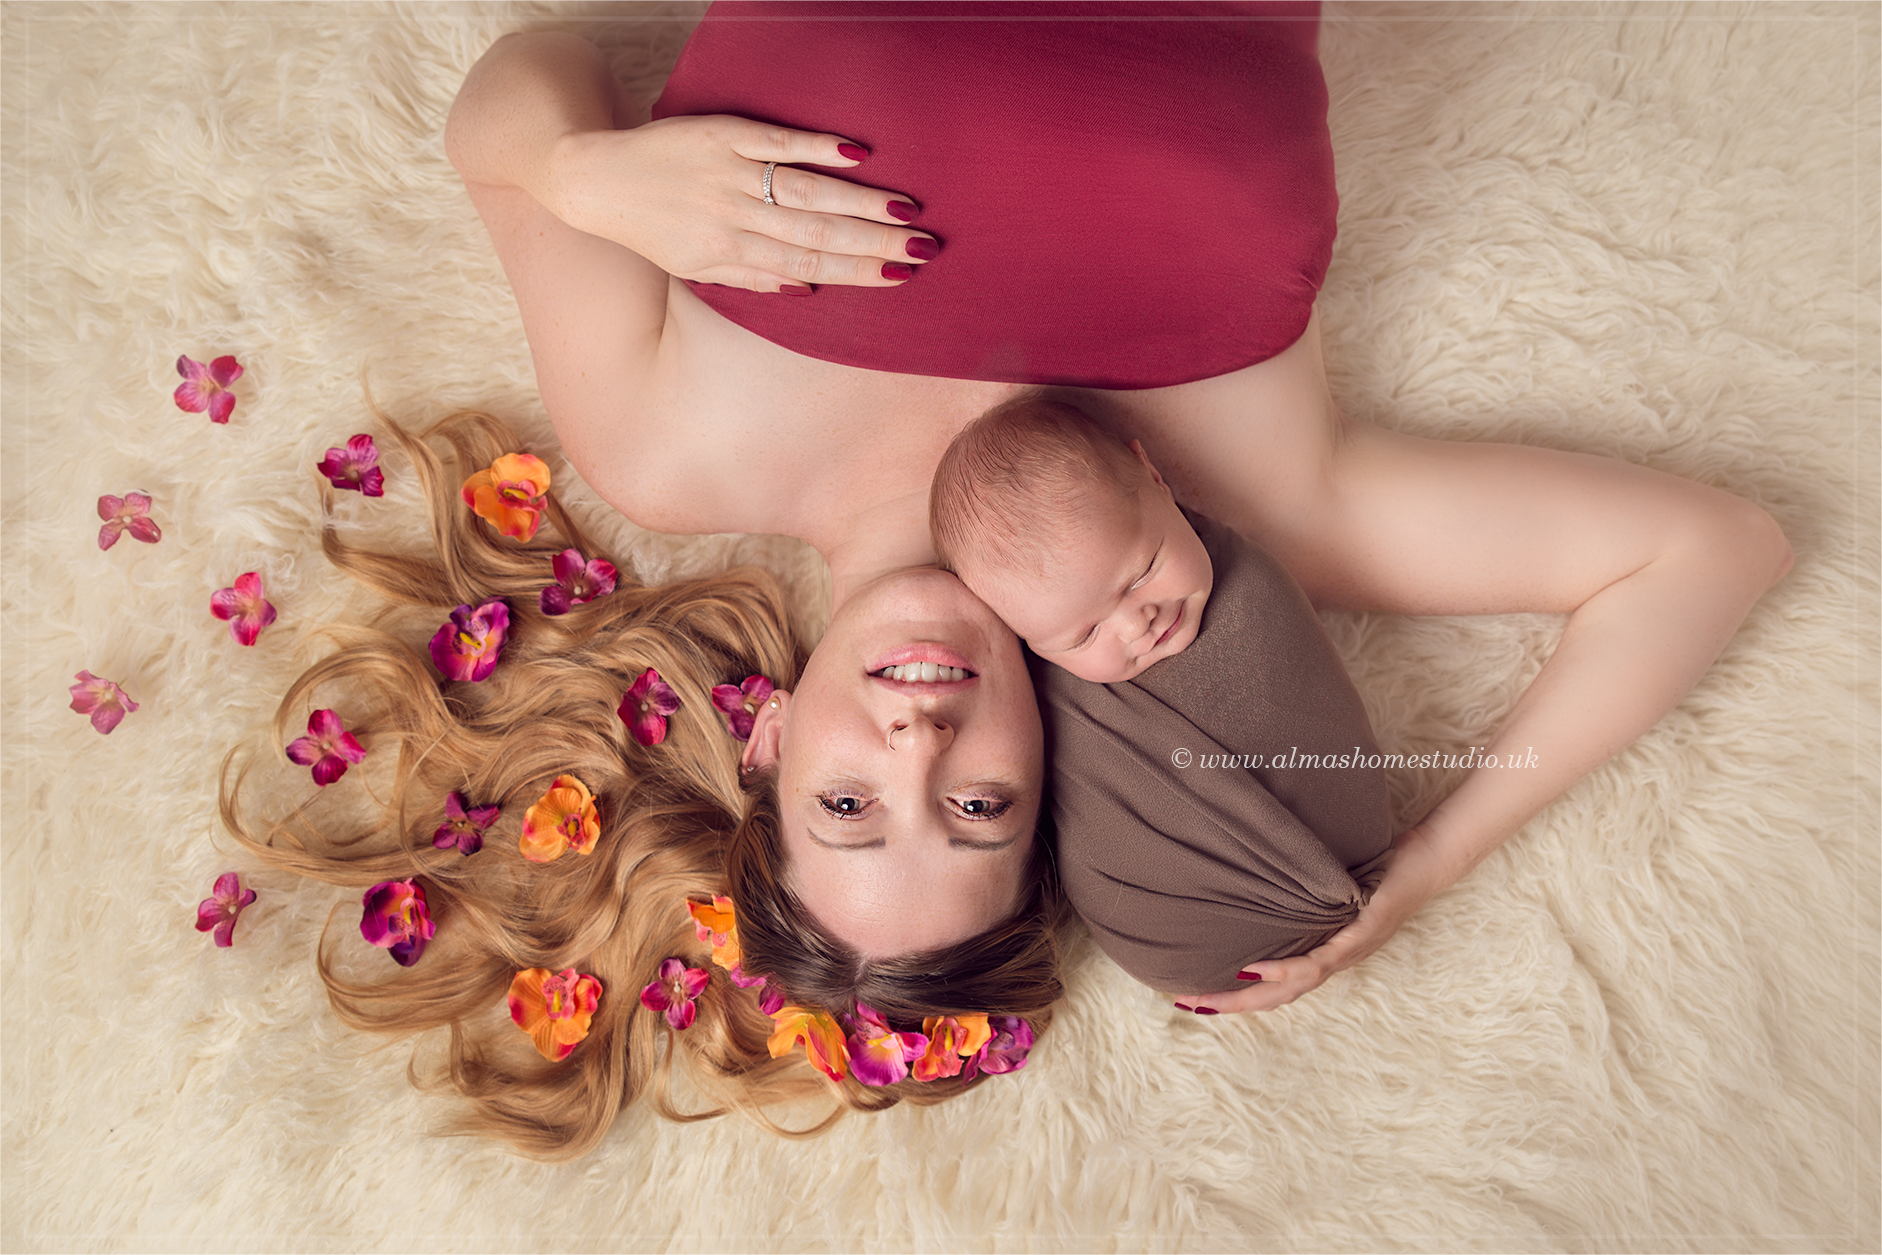 Alma's Home studio - professional newborn photographer based in Blandford Forum Dorset